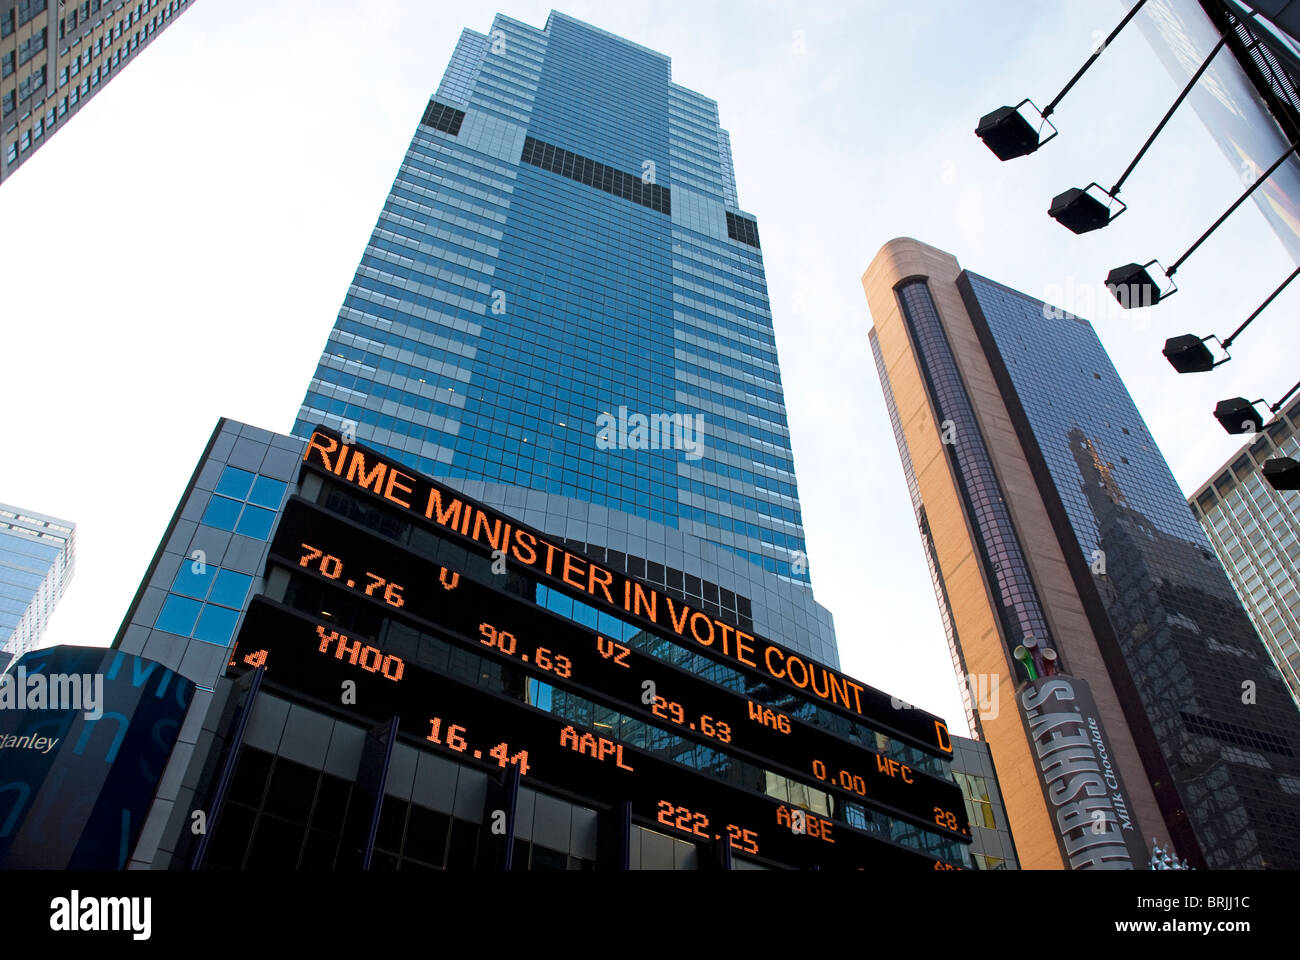 Nasdaq Quotes | Continuous Scrolling Stock Exchange Quotes In Front Of Nasdaq Stock